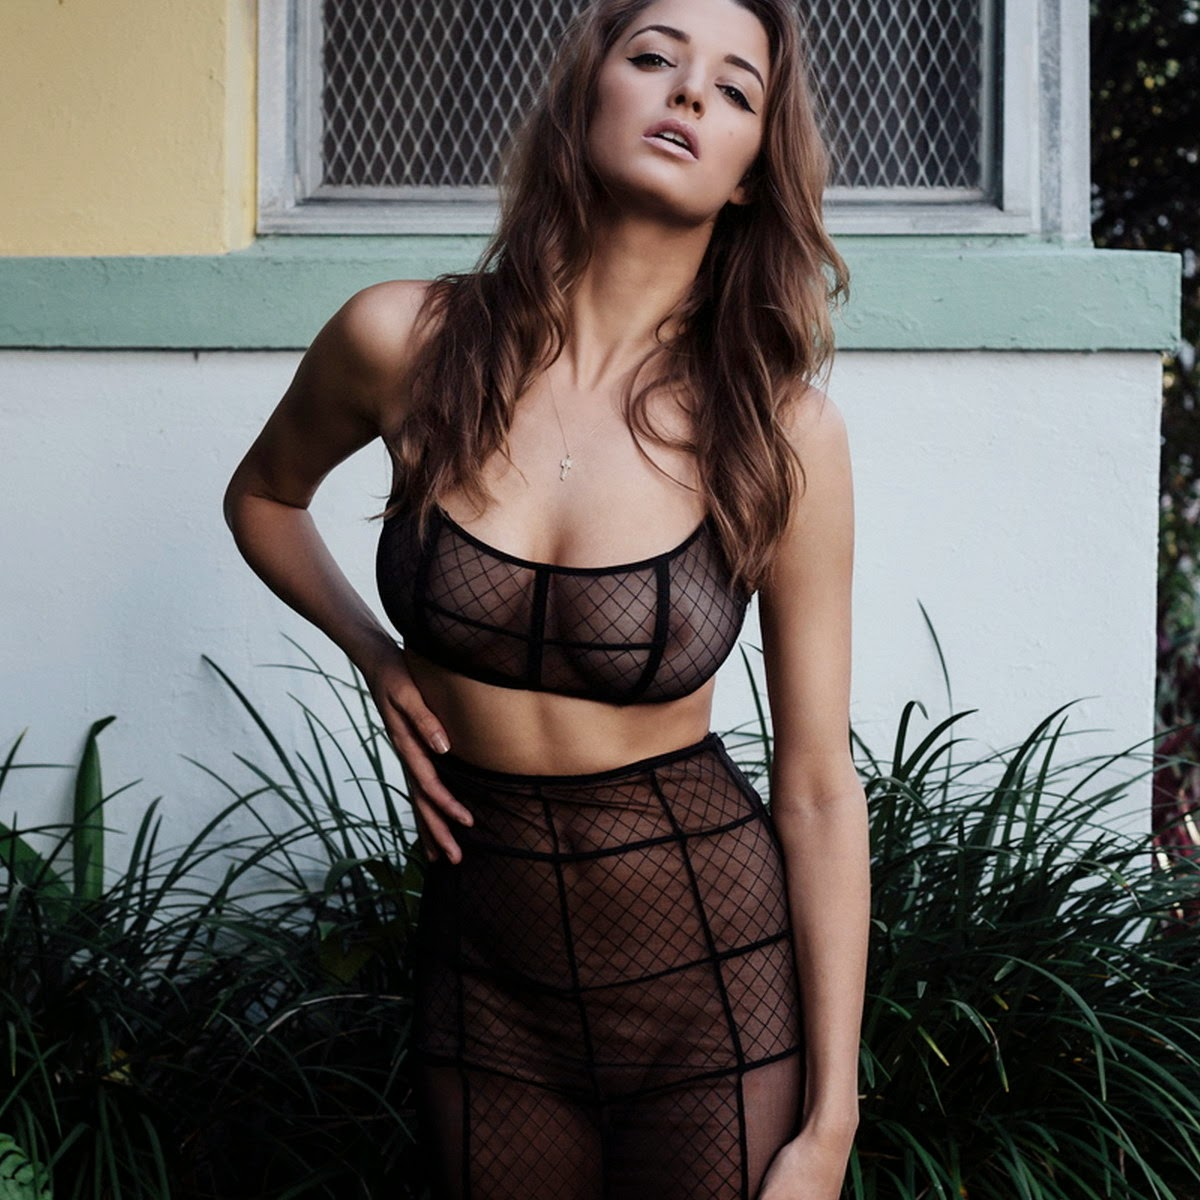 Regret, that alyssa arce see through sorry, that